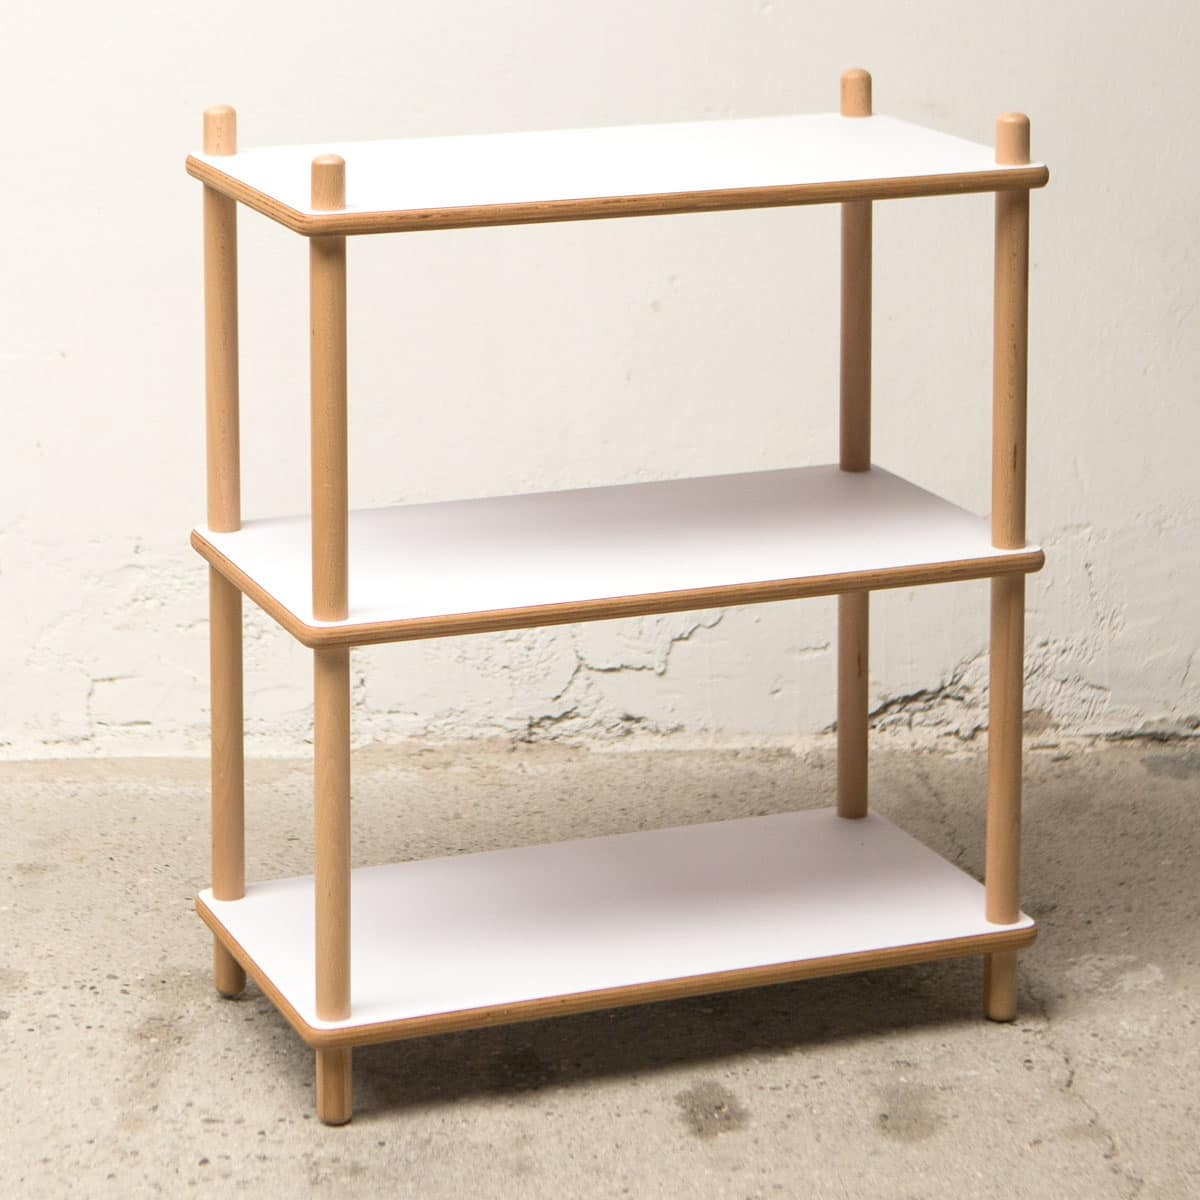 Shelf Bolz, Shelf in beech and plywood, for domestic use